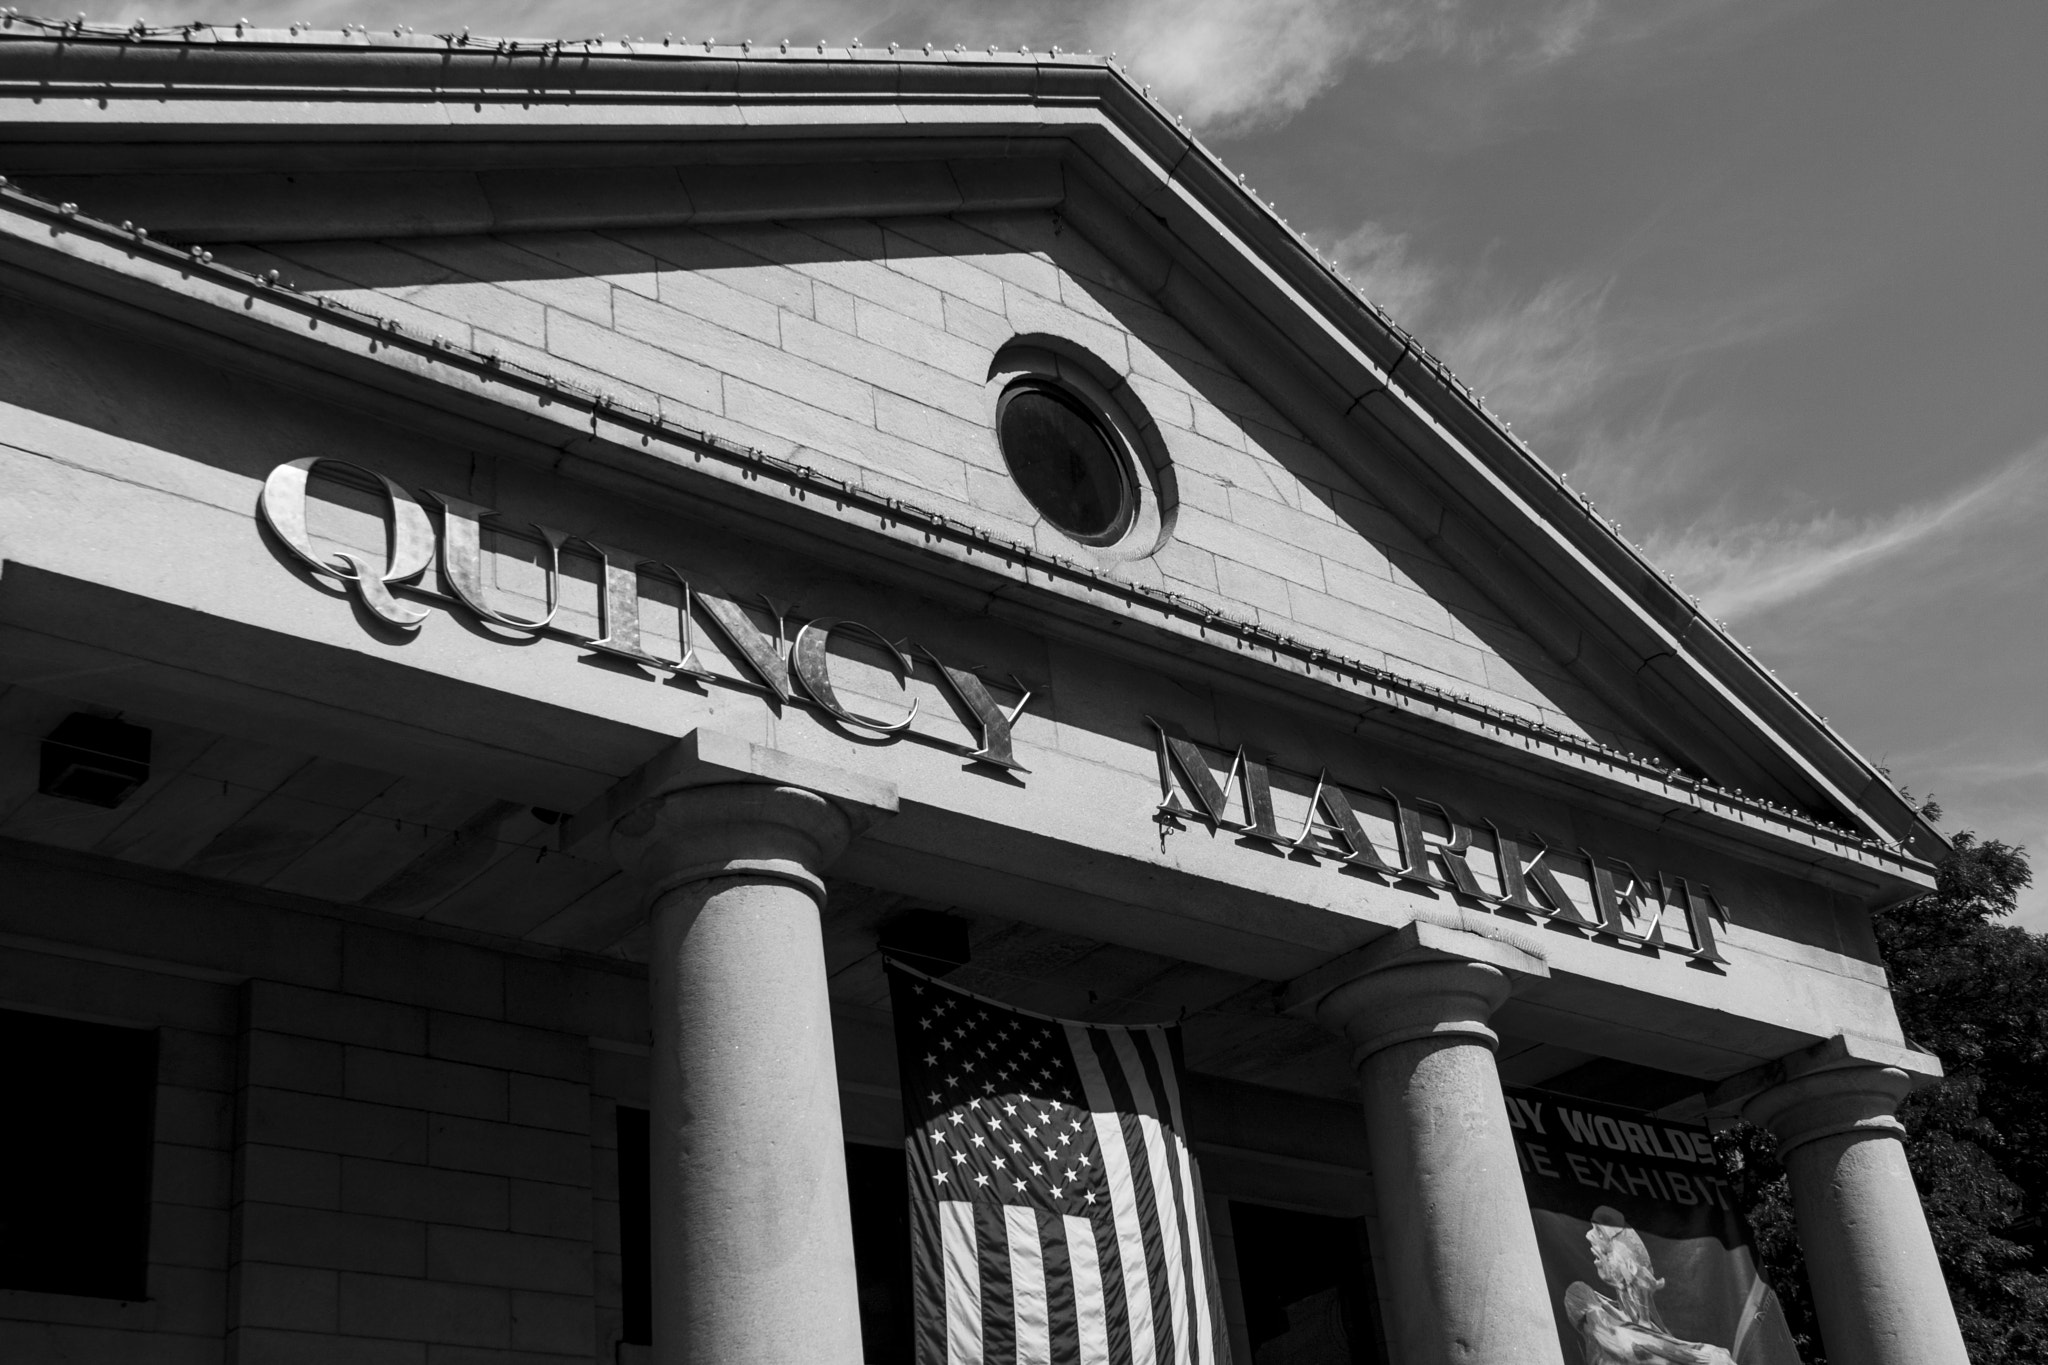 Photograph Quincy Market by Brian T on 500px